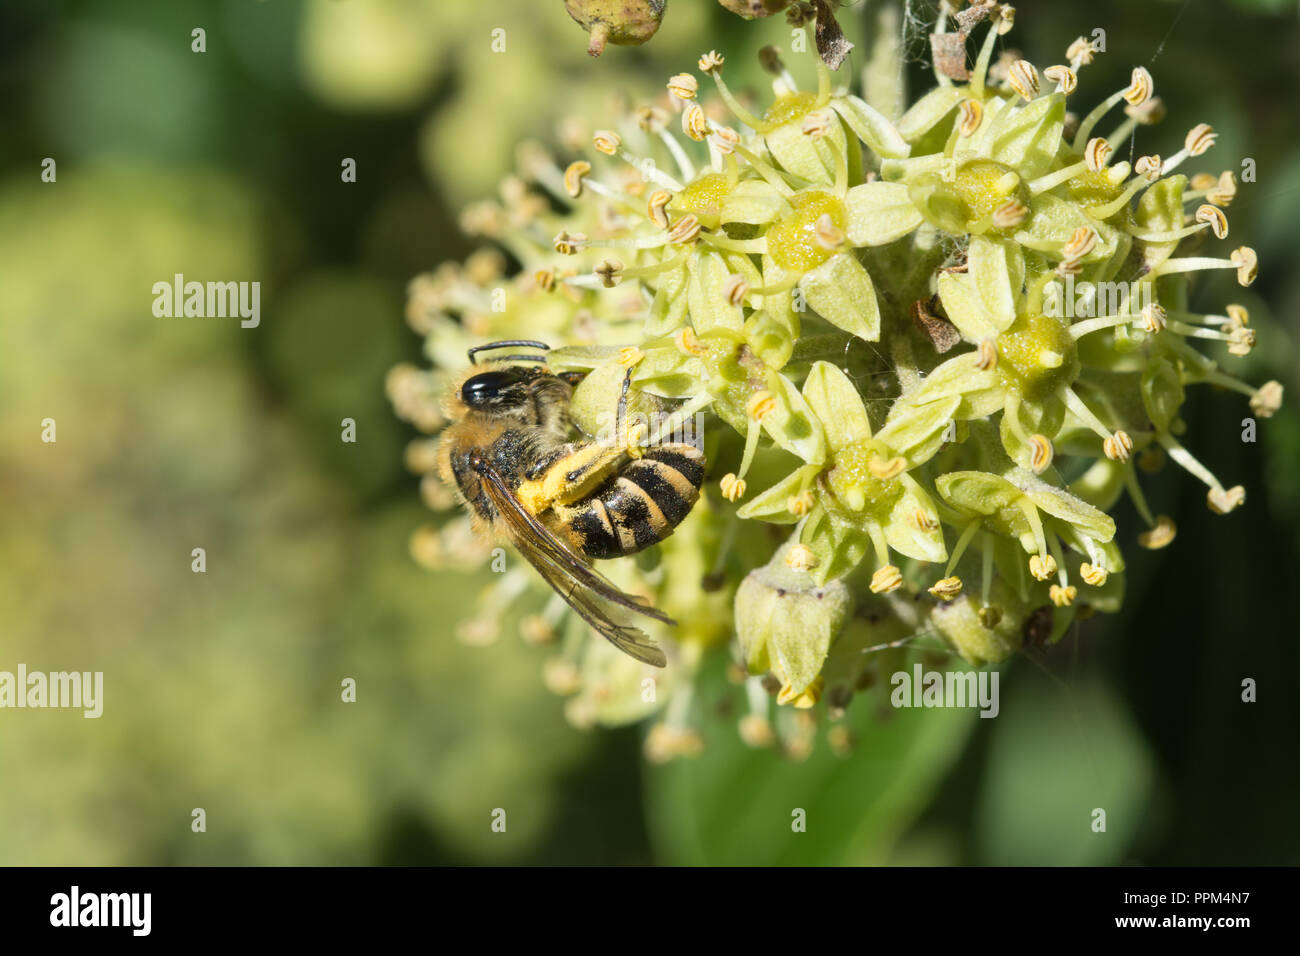 Ivy bee (Colletes hederae) feeding on nectar of ivy flowers (Hedera helix) in late September and collecting pollen (with copy space) - Stock Image